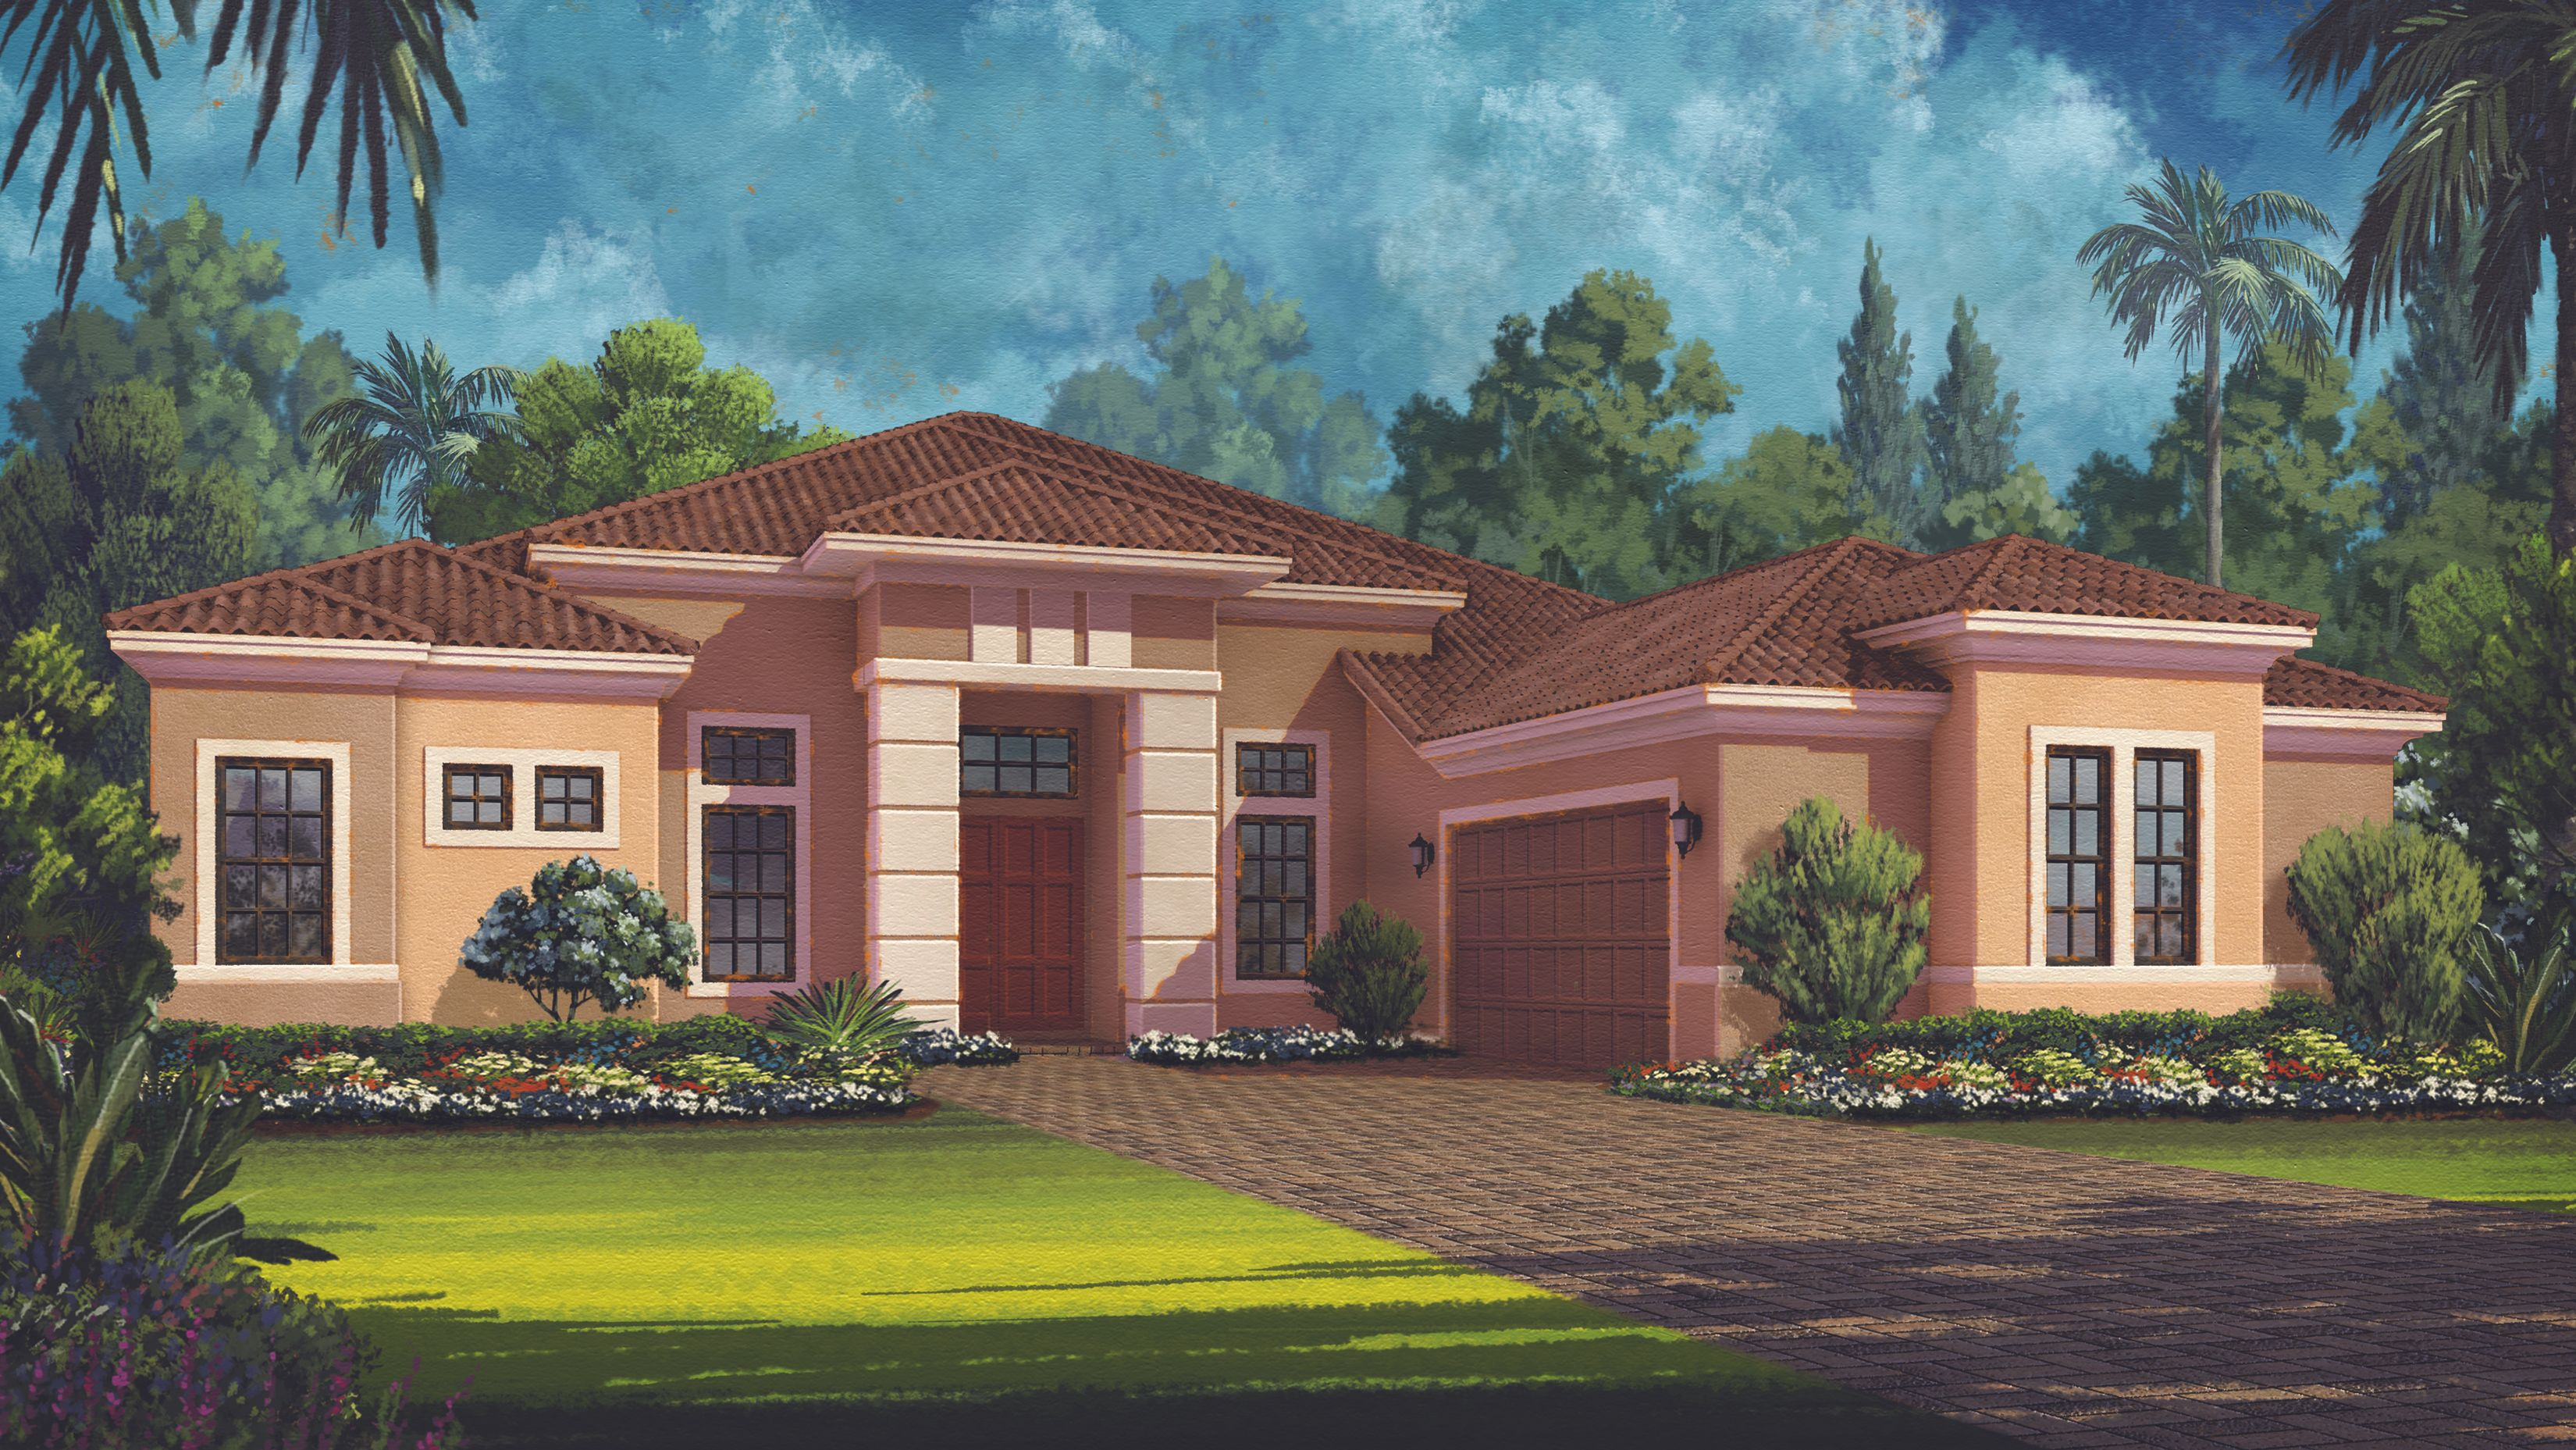 Mercede iv plan sarasota florida 34238 mercede iv plan for Palmers homes